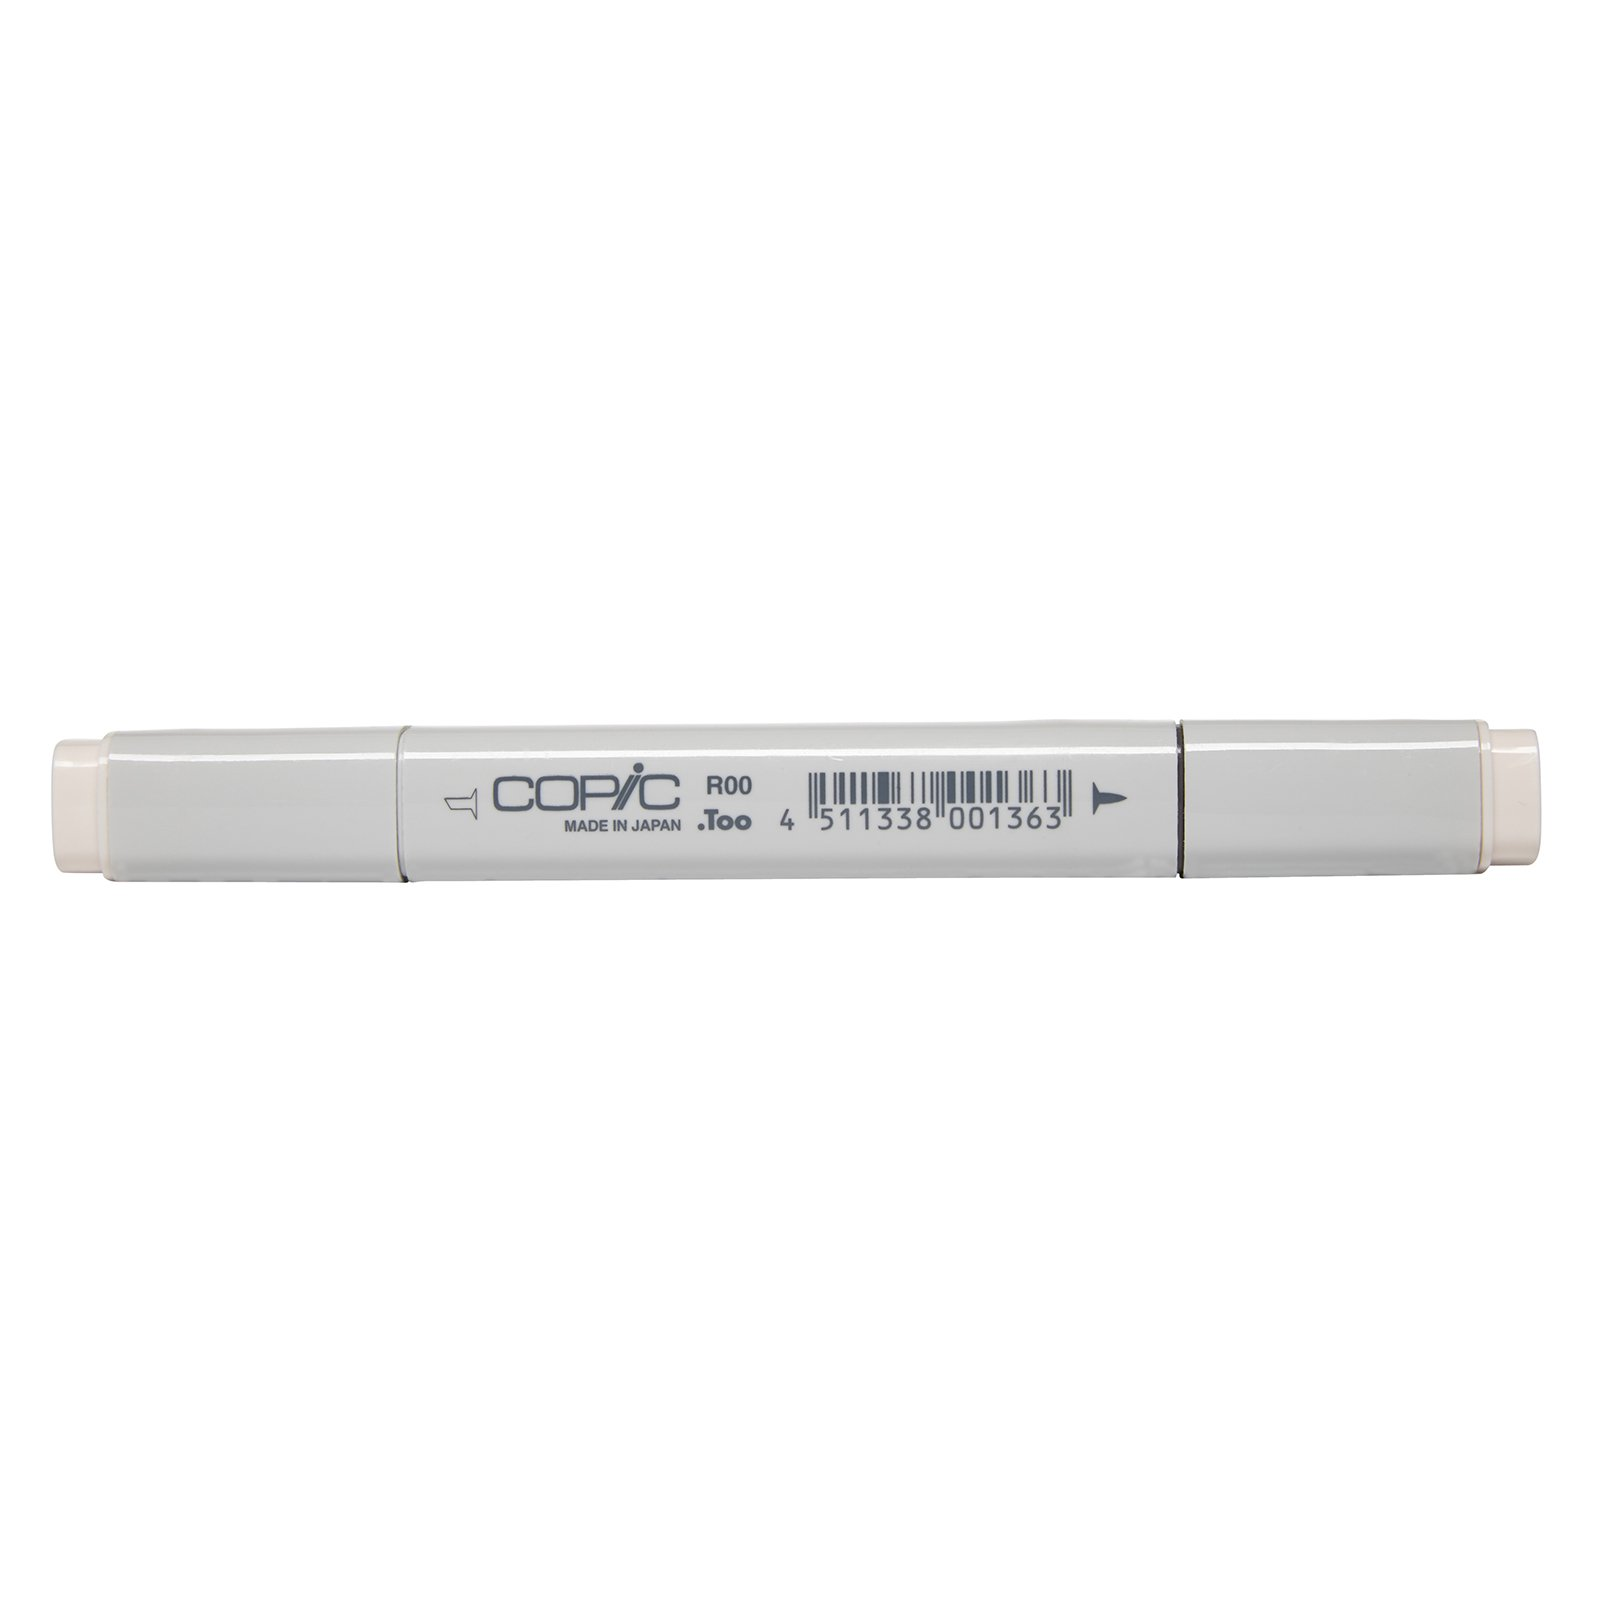 Copic Marker with Replaceable Nib, R00-Copic, Pinkish White